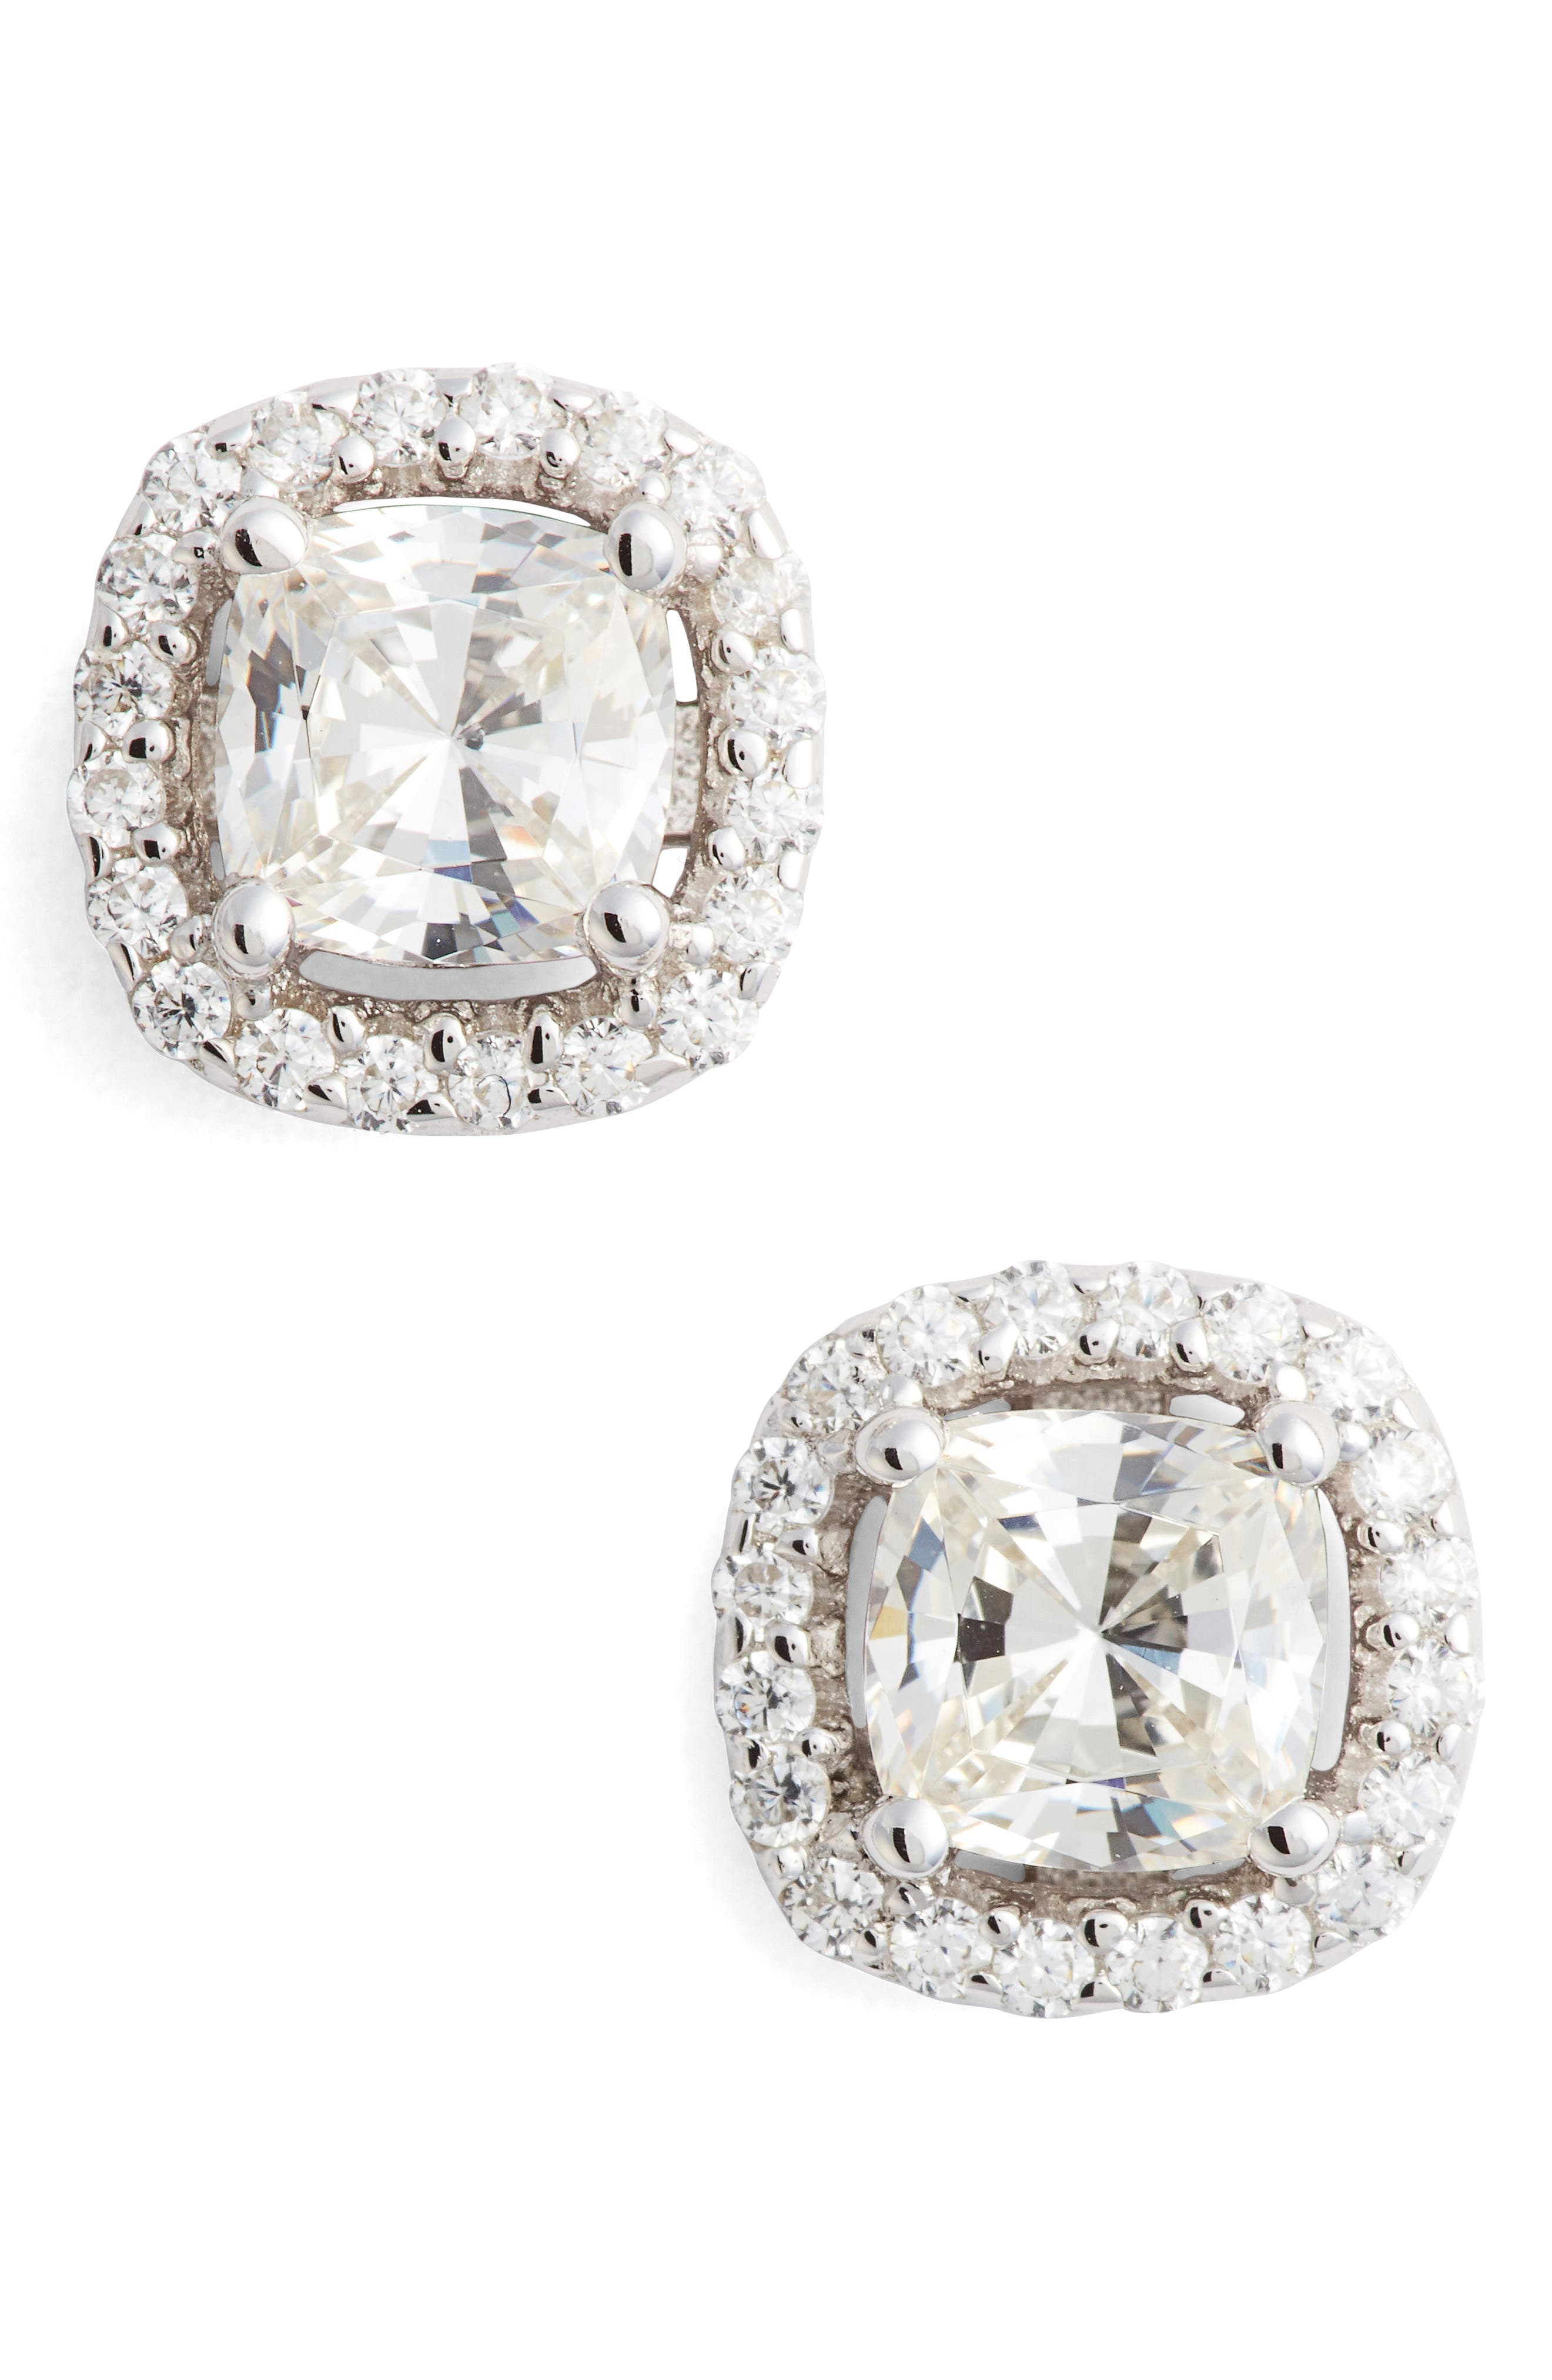 Cushion Cut Simulated Diamond Stud Earrings,                             Main thumbnail 1, color,                             Silver/ Clear